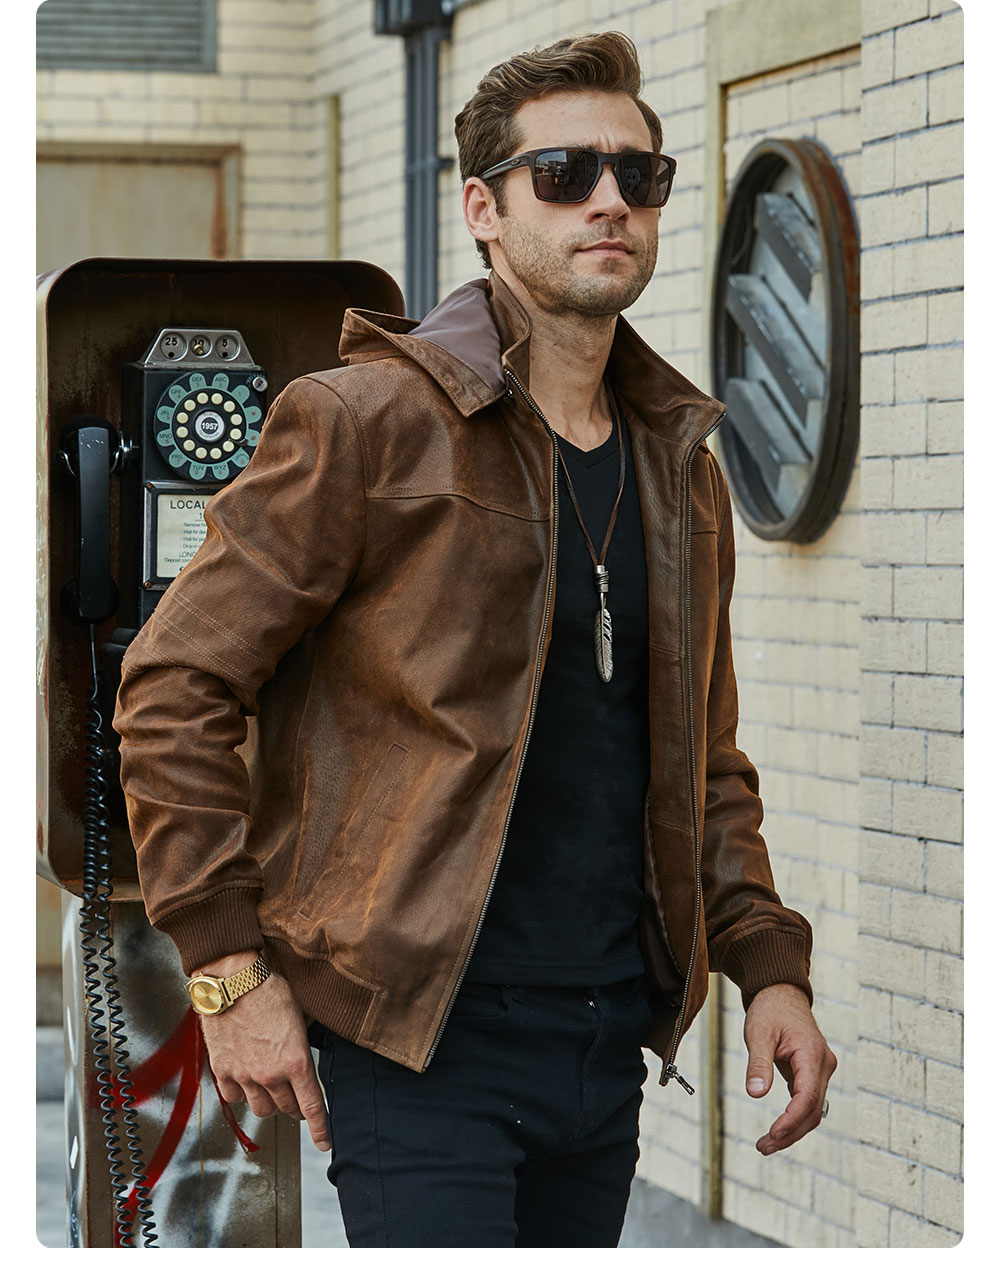 H6fe8a56432ec451c829535fc78276e94J New Men's Winter Jacket Made Of Genuine Pigskin Leather With A Hood, Pigskin Motorcycle Jacket, Natural Leather Jacket